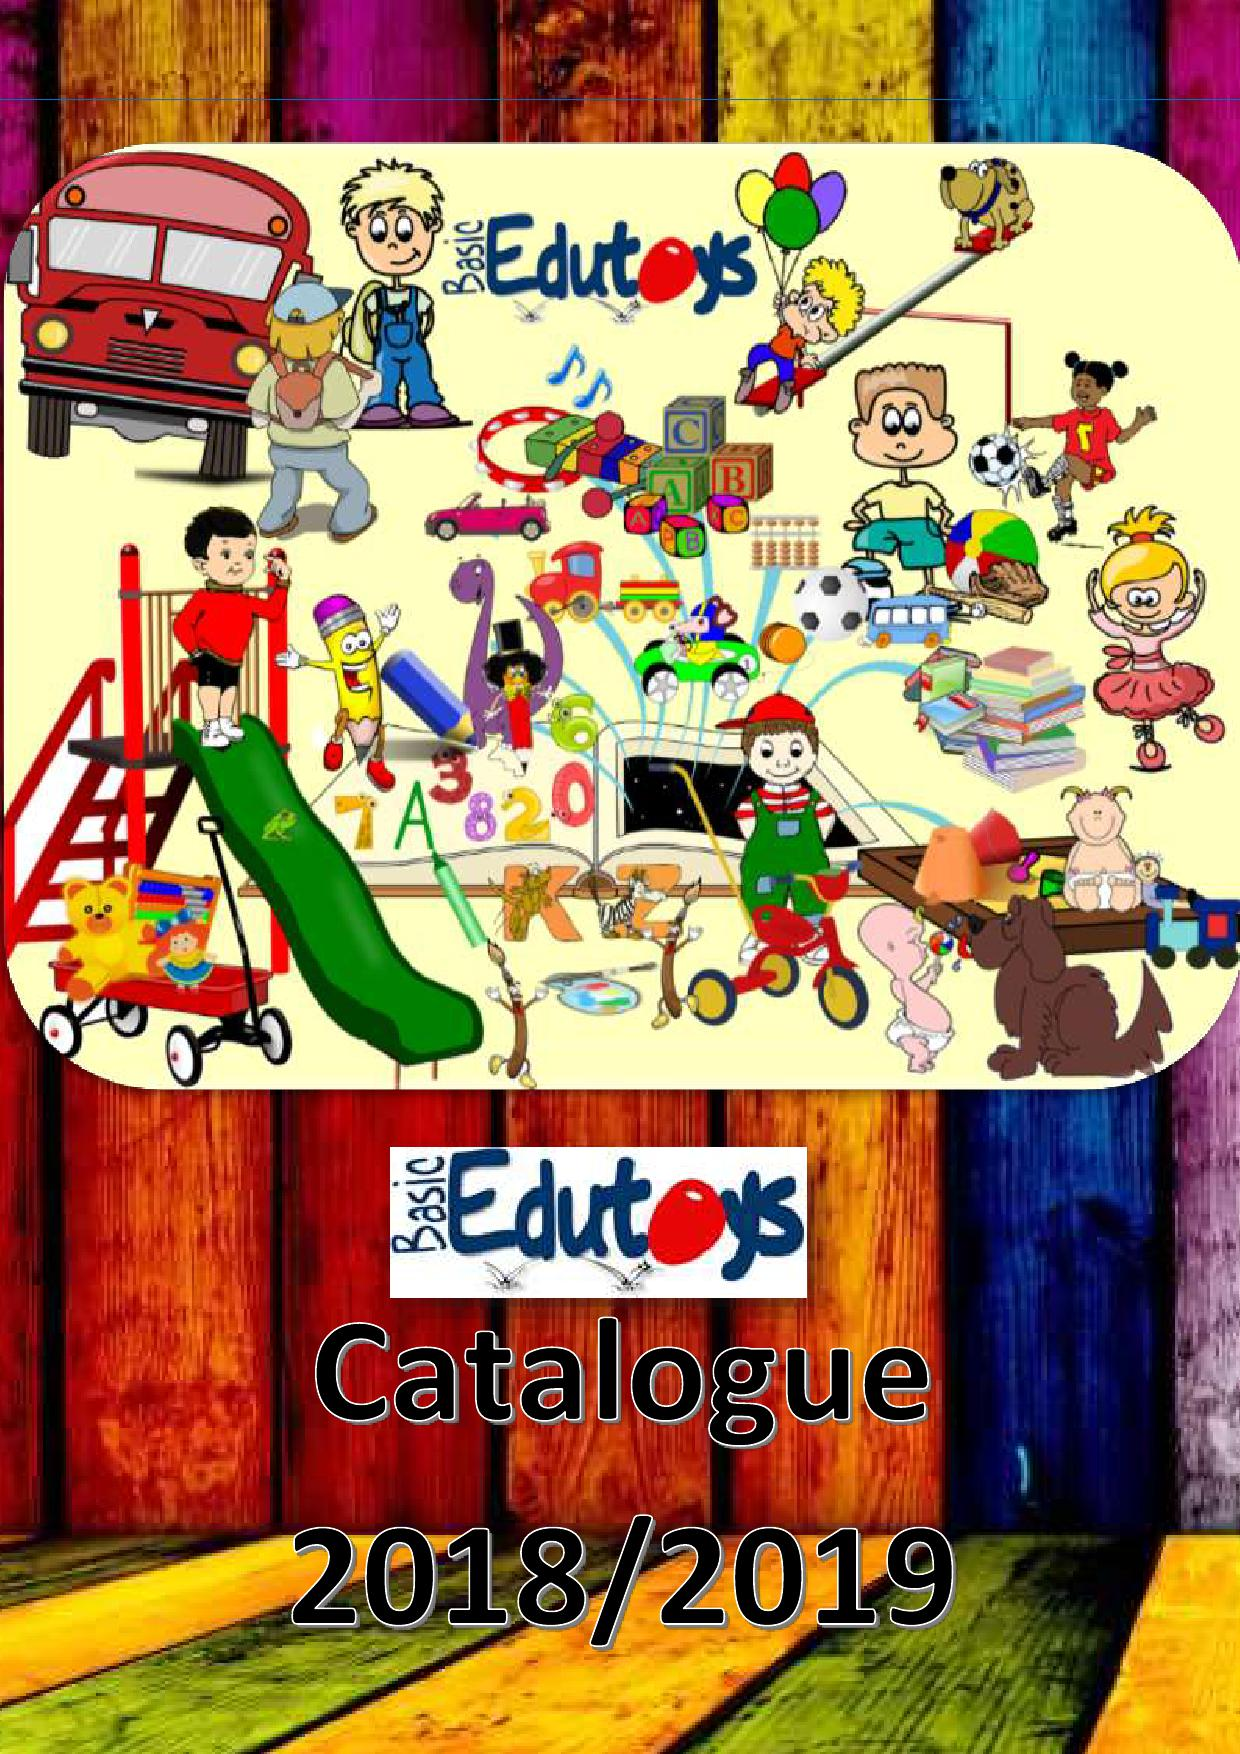 Basic Edutoys Catalogue 201819_000001